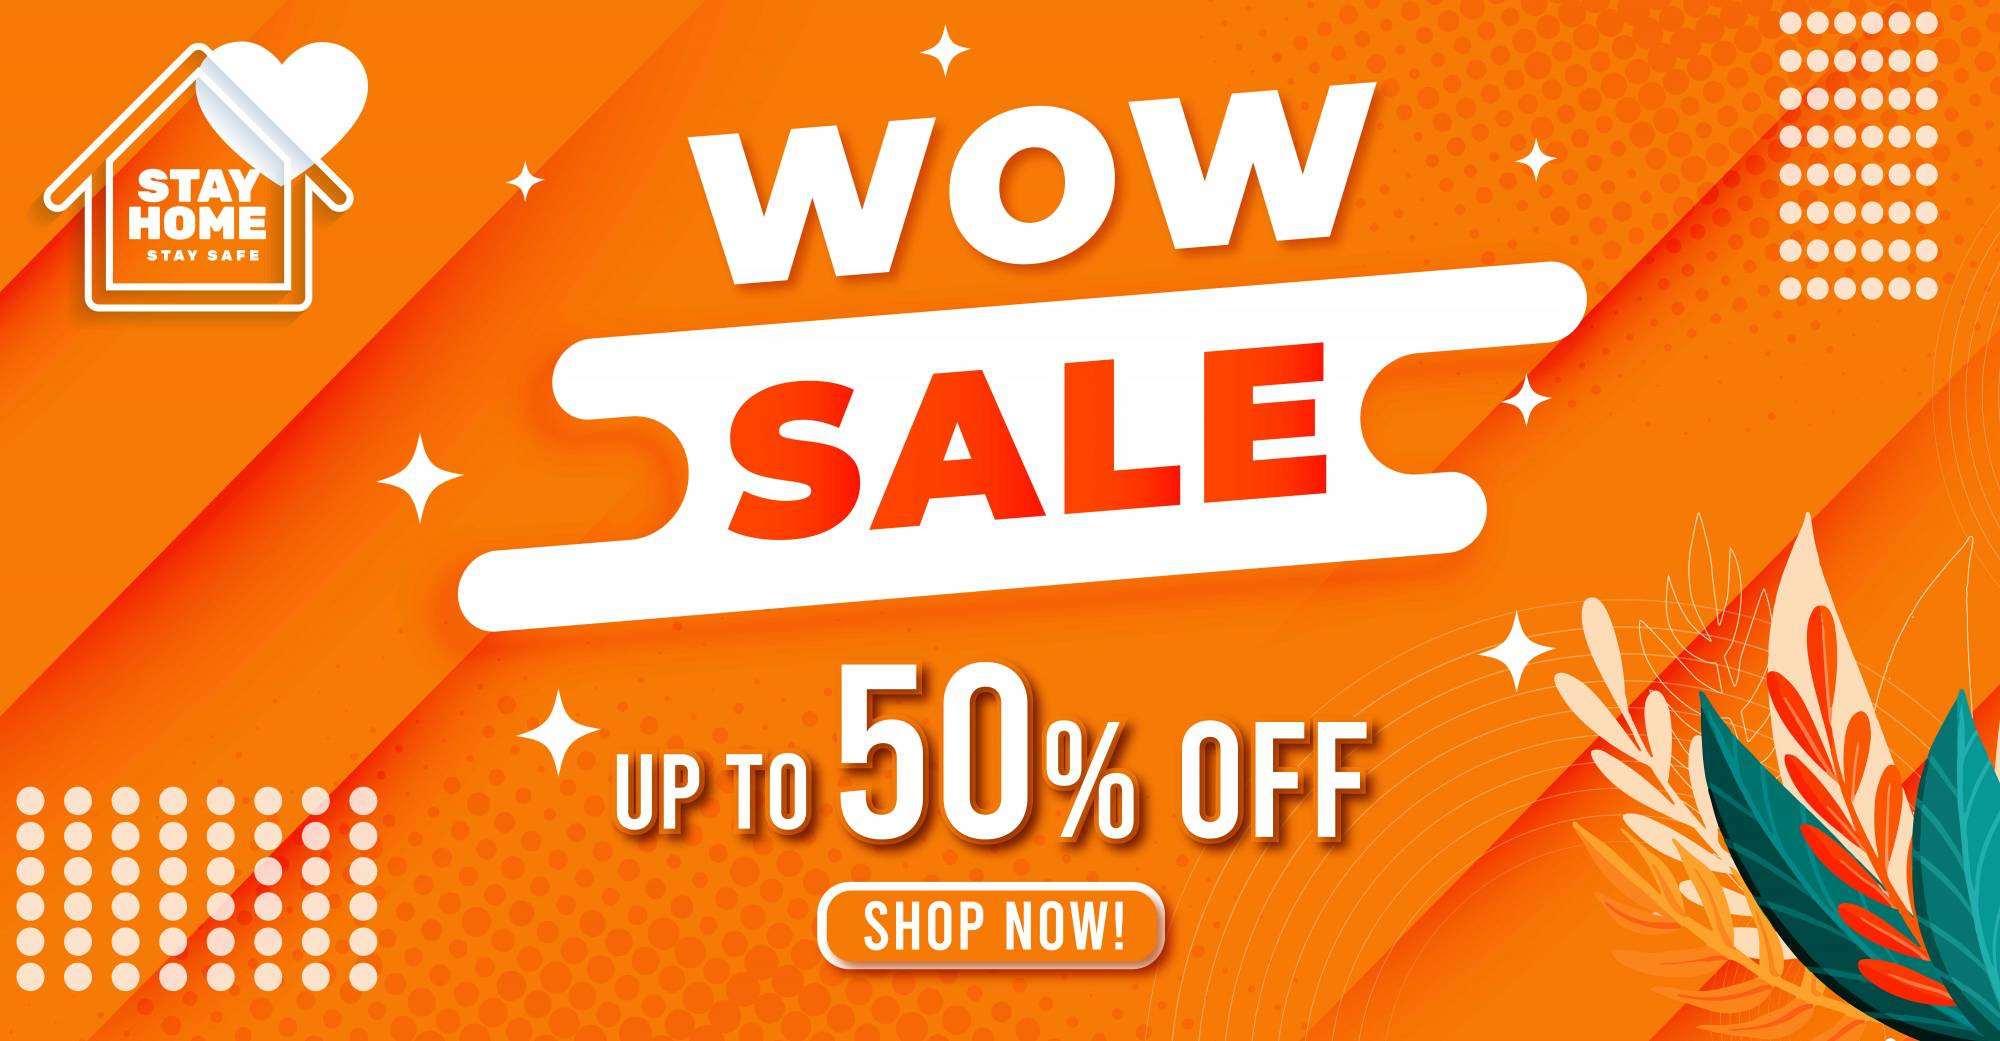 wow sale 50% off